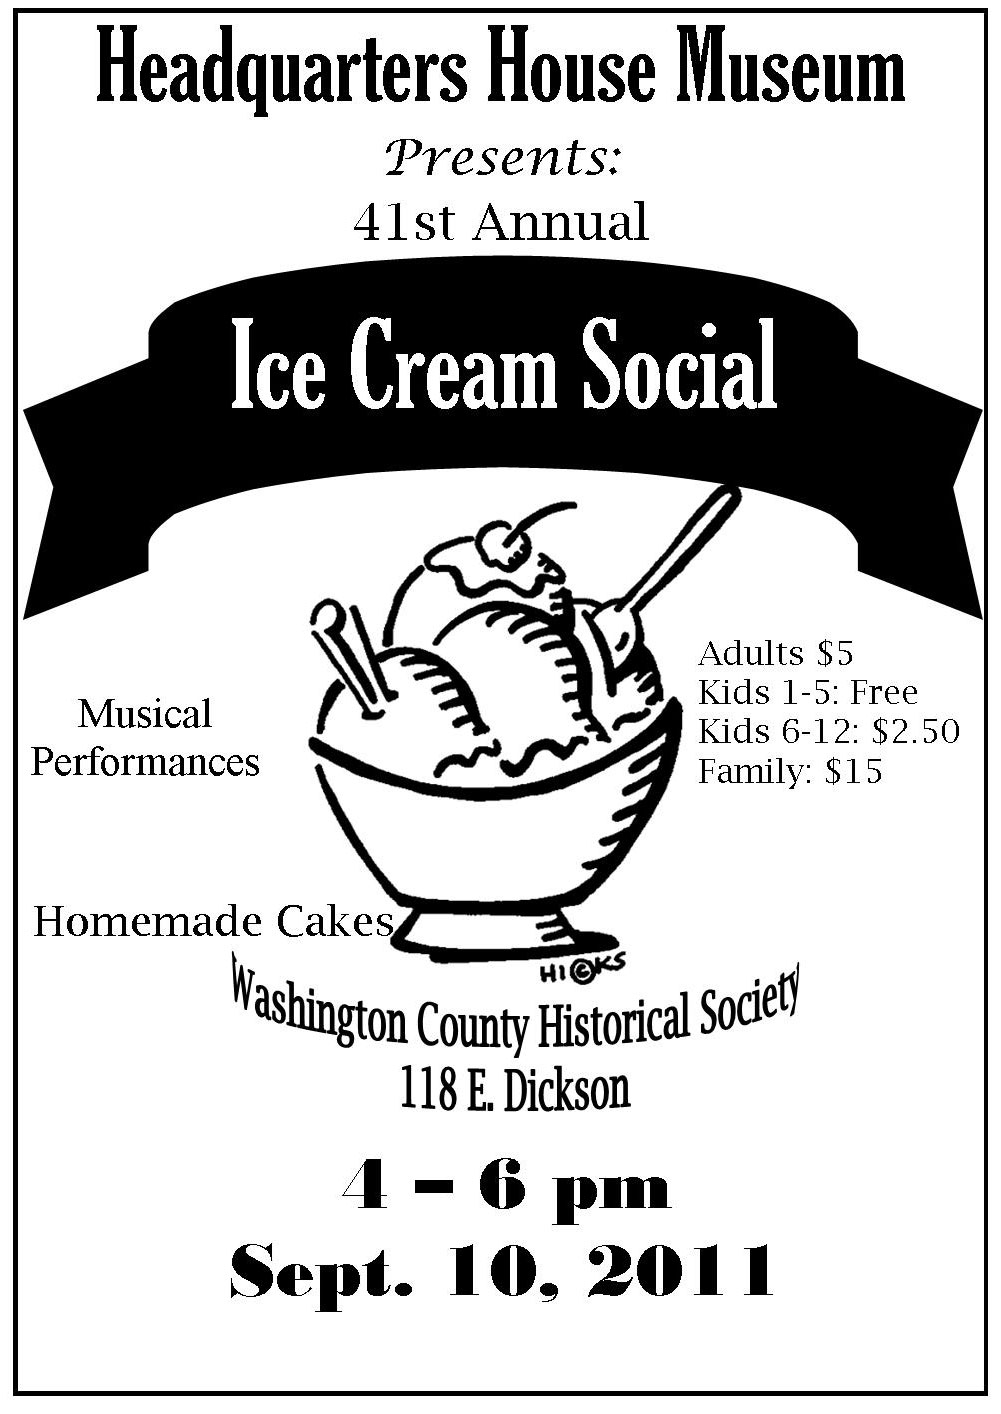 41st annual Ice Cream Social set for Saturday, Sept. 10 at